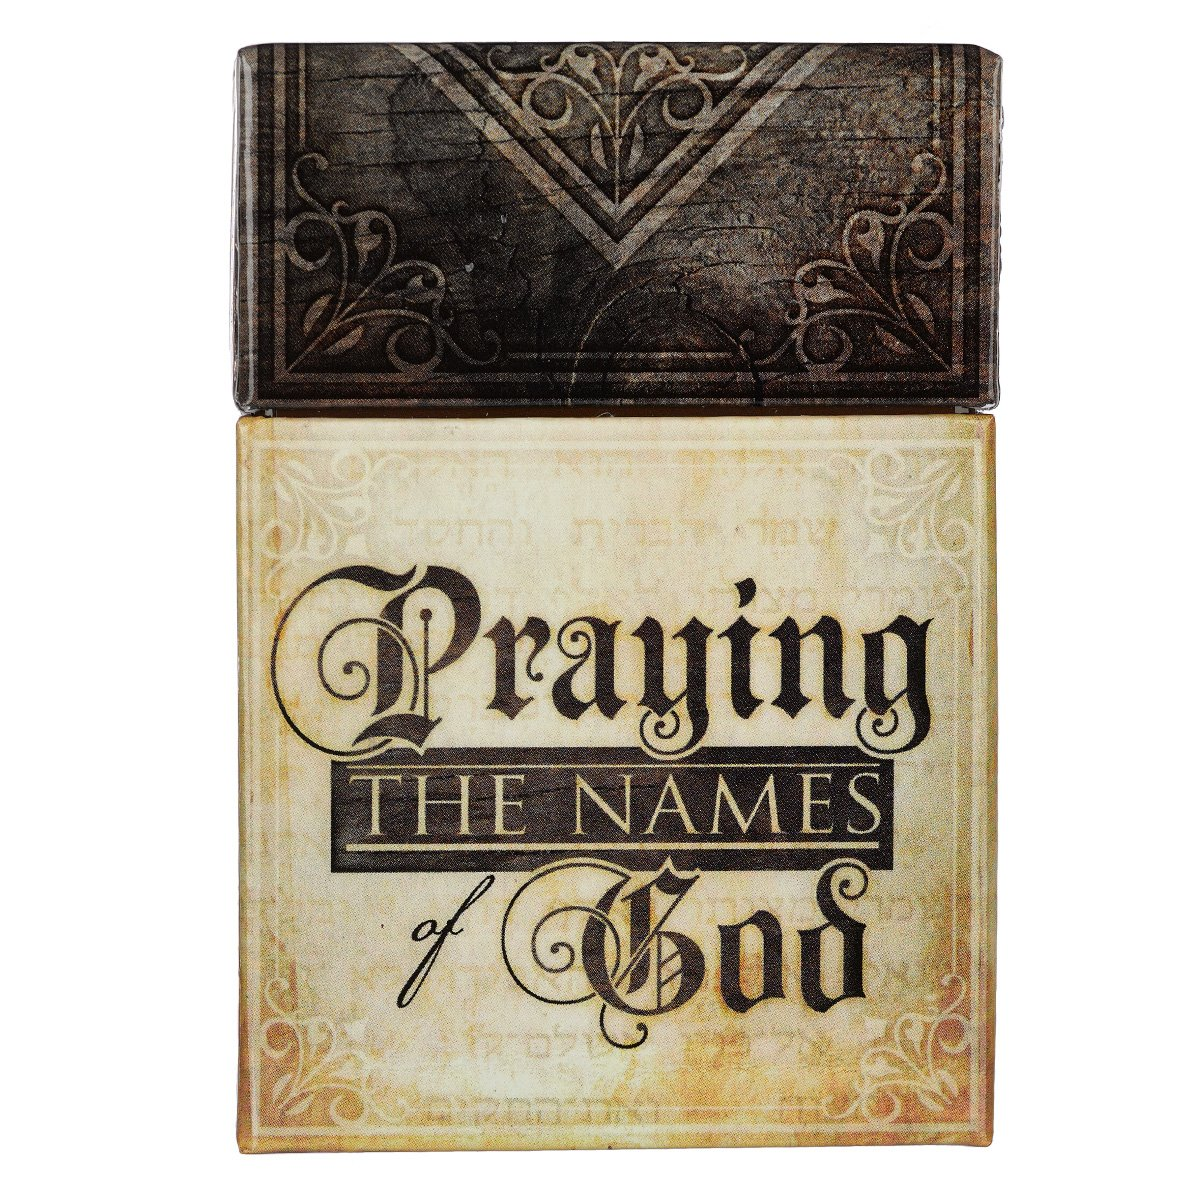 Thank You God Baby Cloth Prayer Photo Book Album